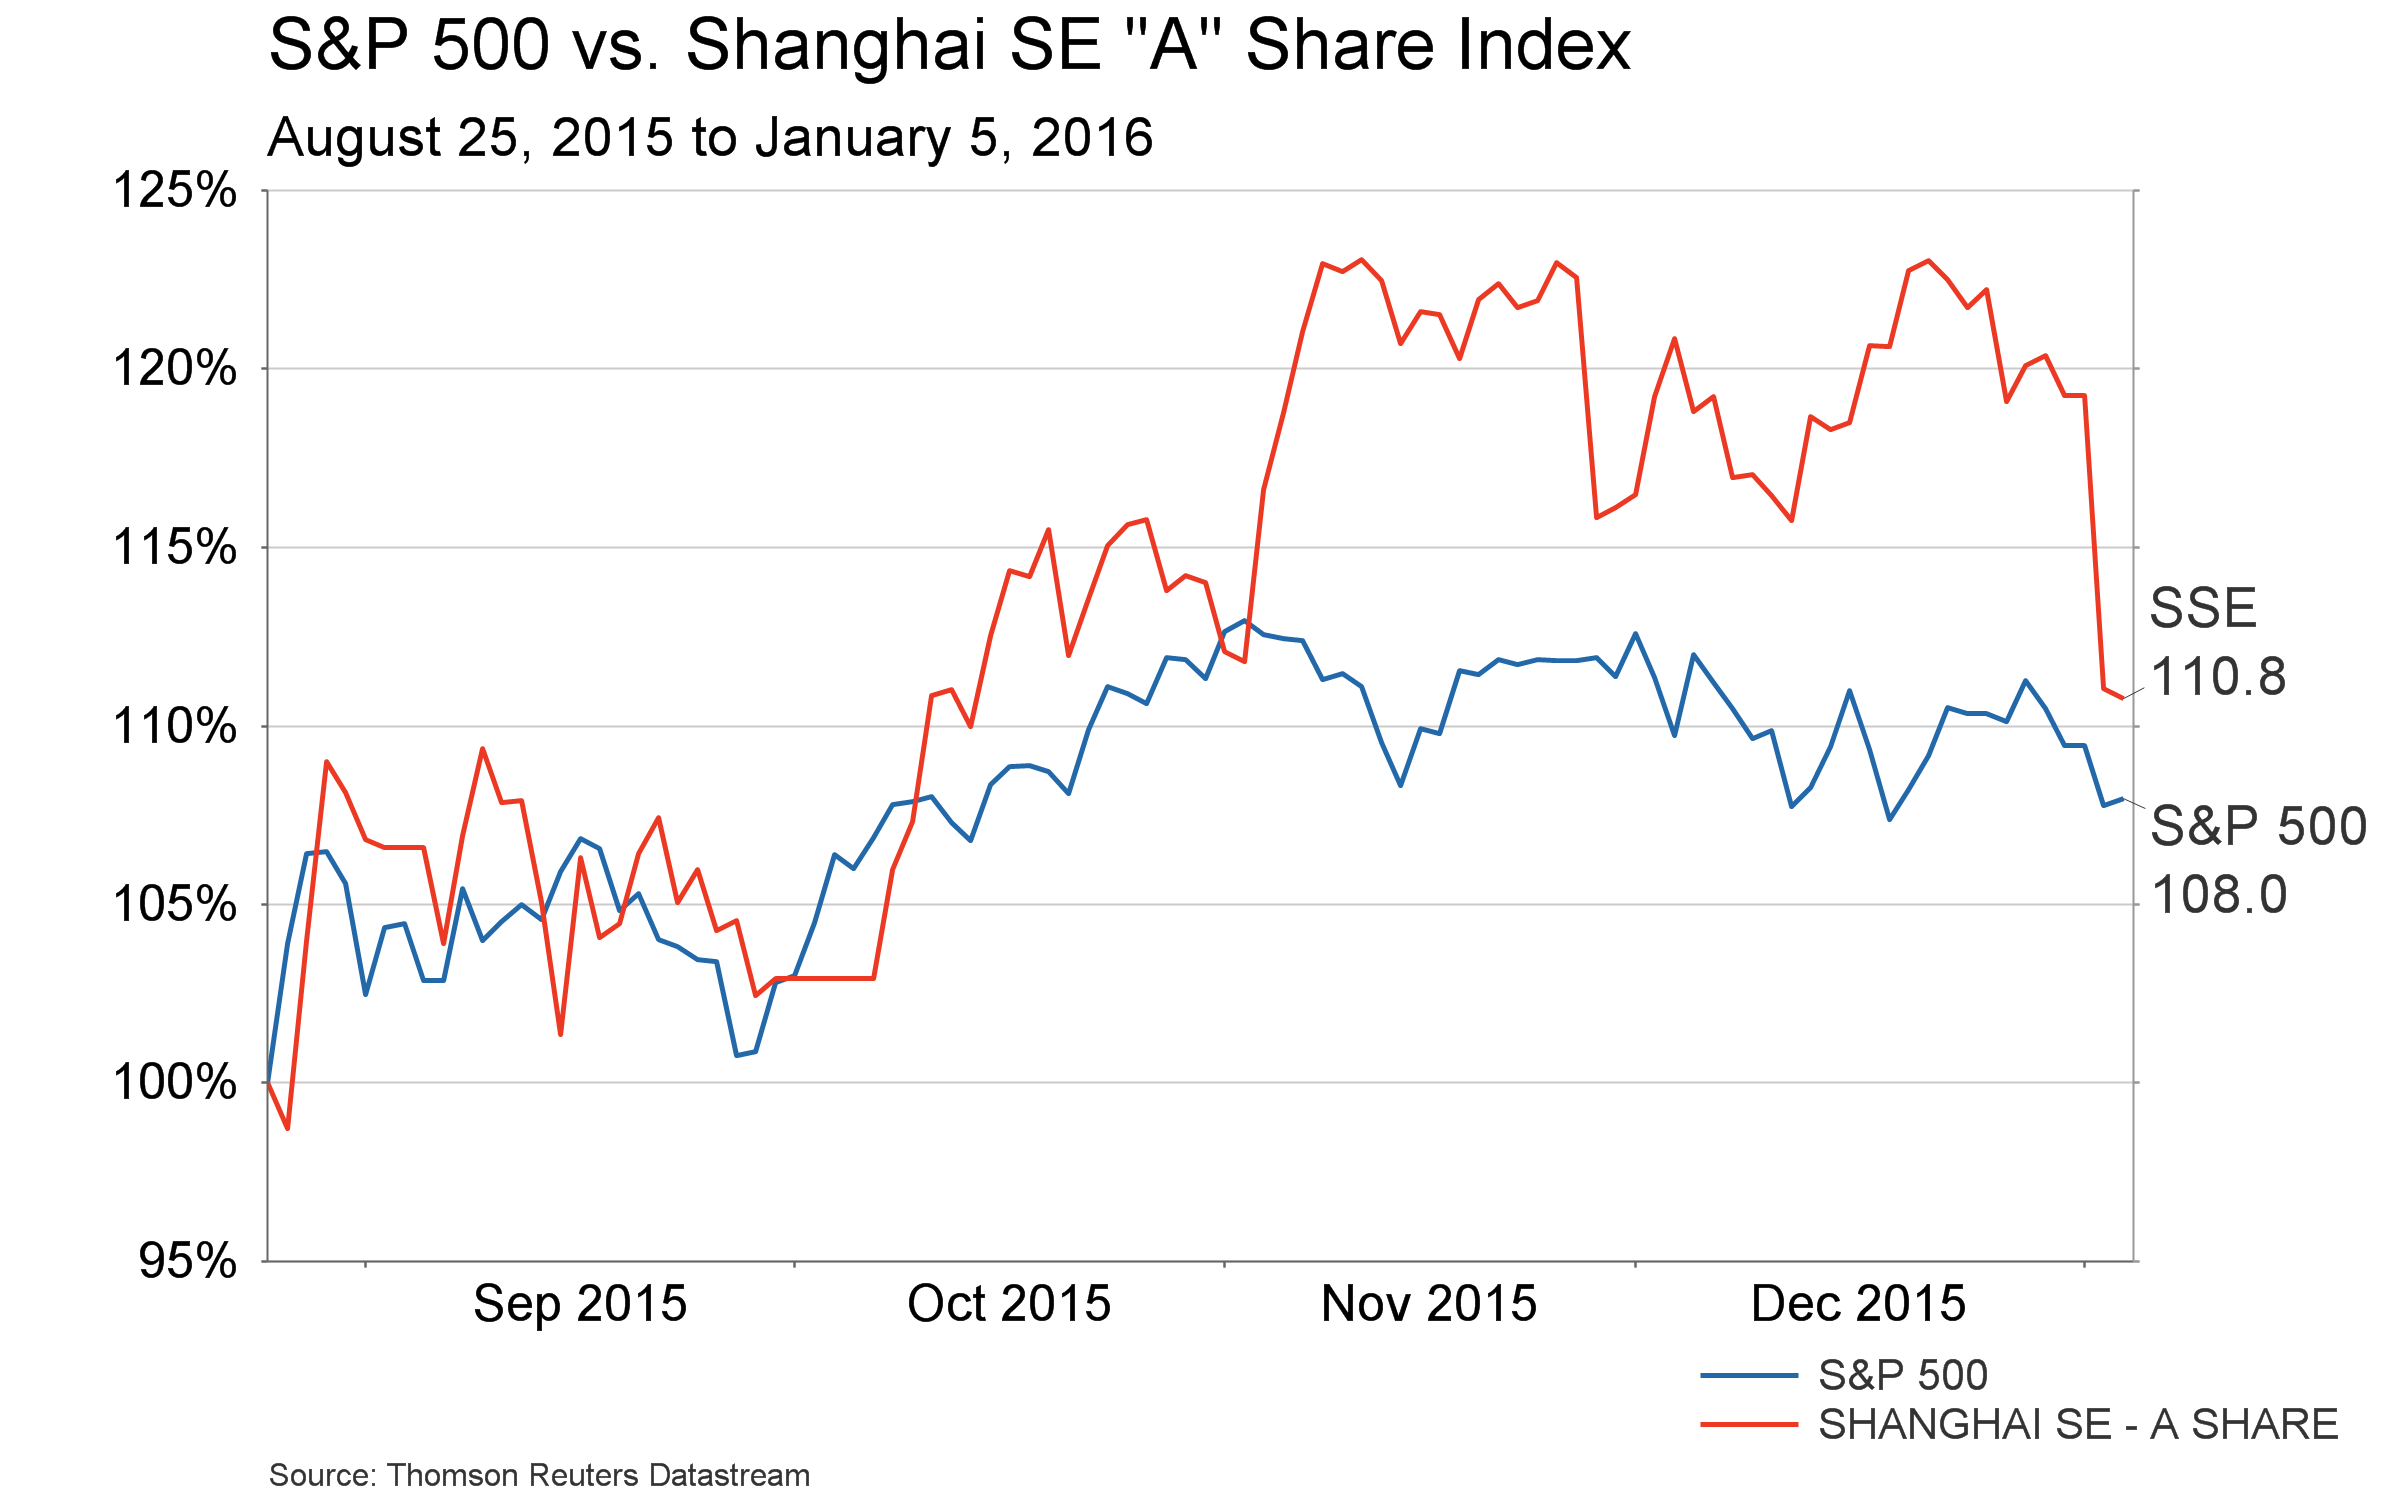 Conference Call charts - S&P 500 vs Shanghai - since August crash S